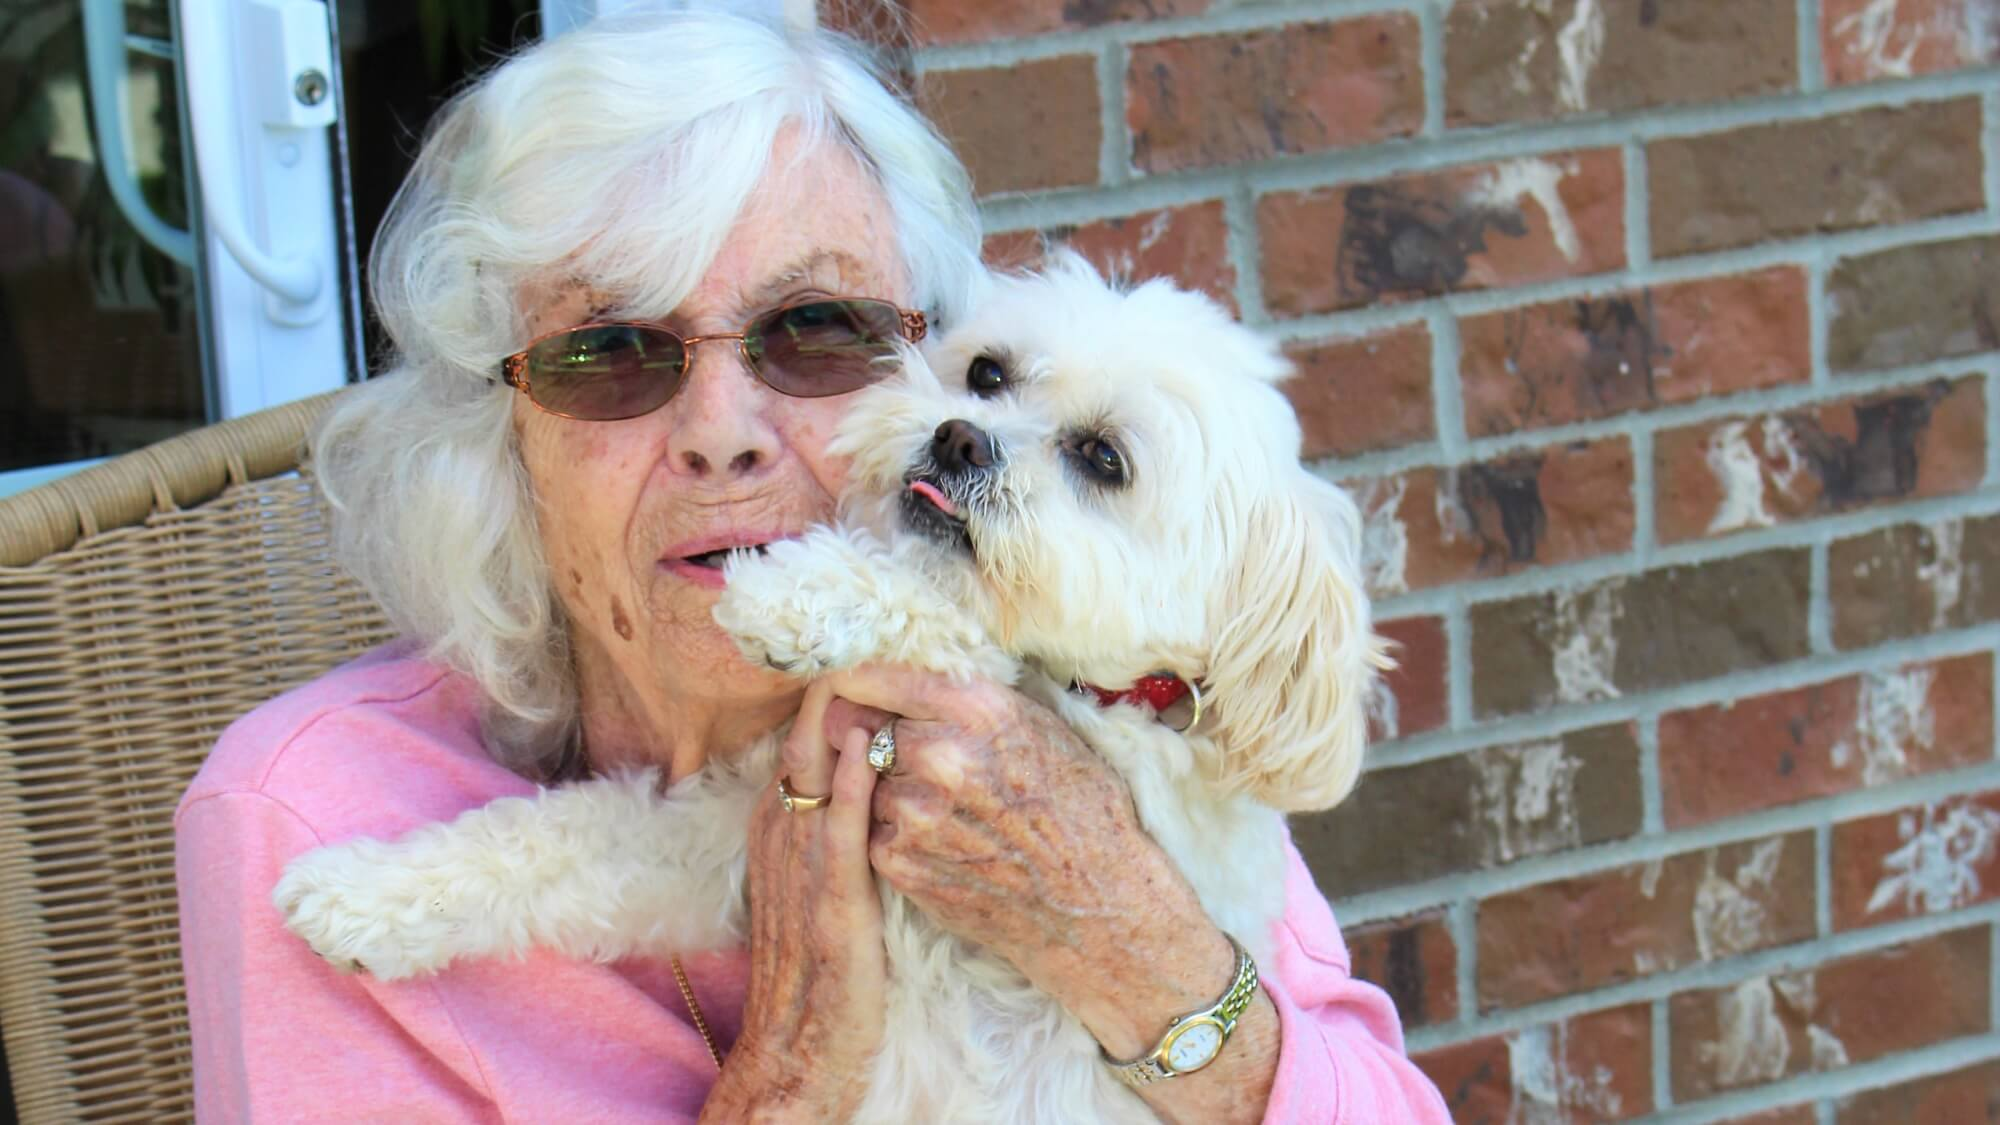 Pets are like family here at Towne Center.